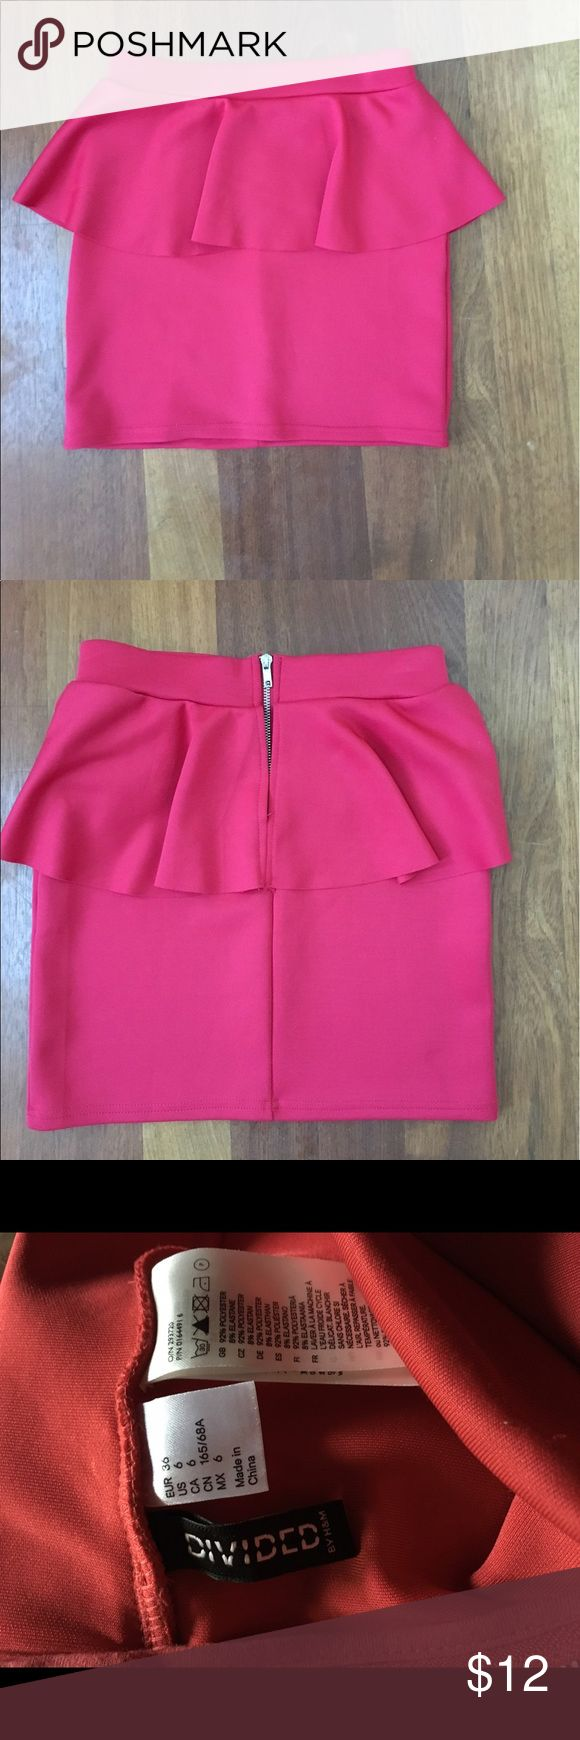 H &M Divided skirt. Size 6. Excellent condition! Gorgeous skirt. Bright pink/rose colored. 30% off bundles of 2 or more items from my closet. Divided Skirts Mini